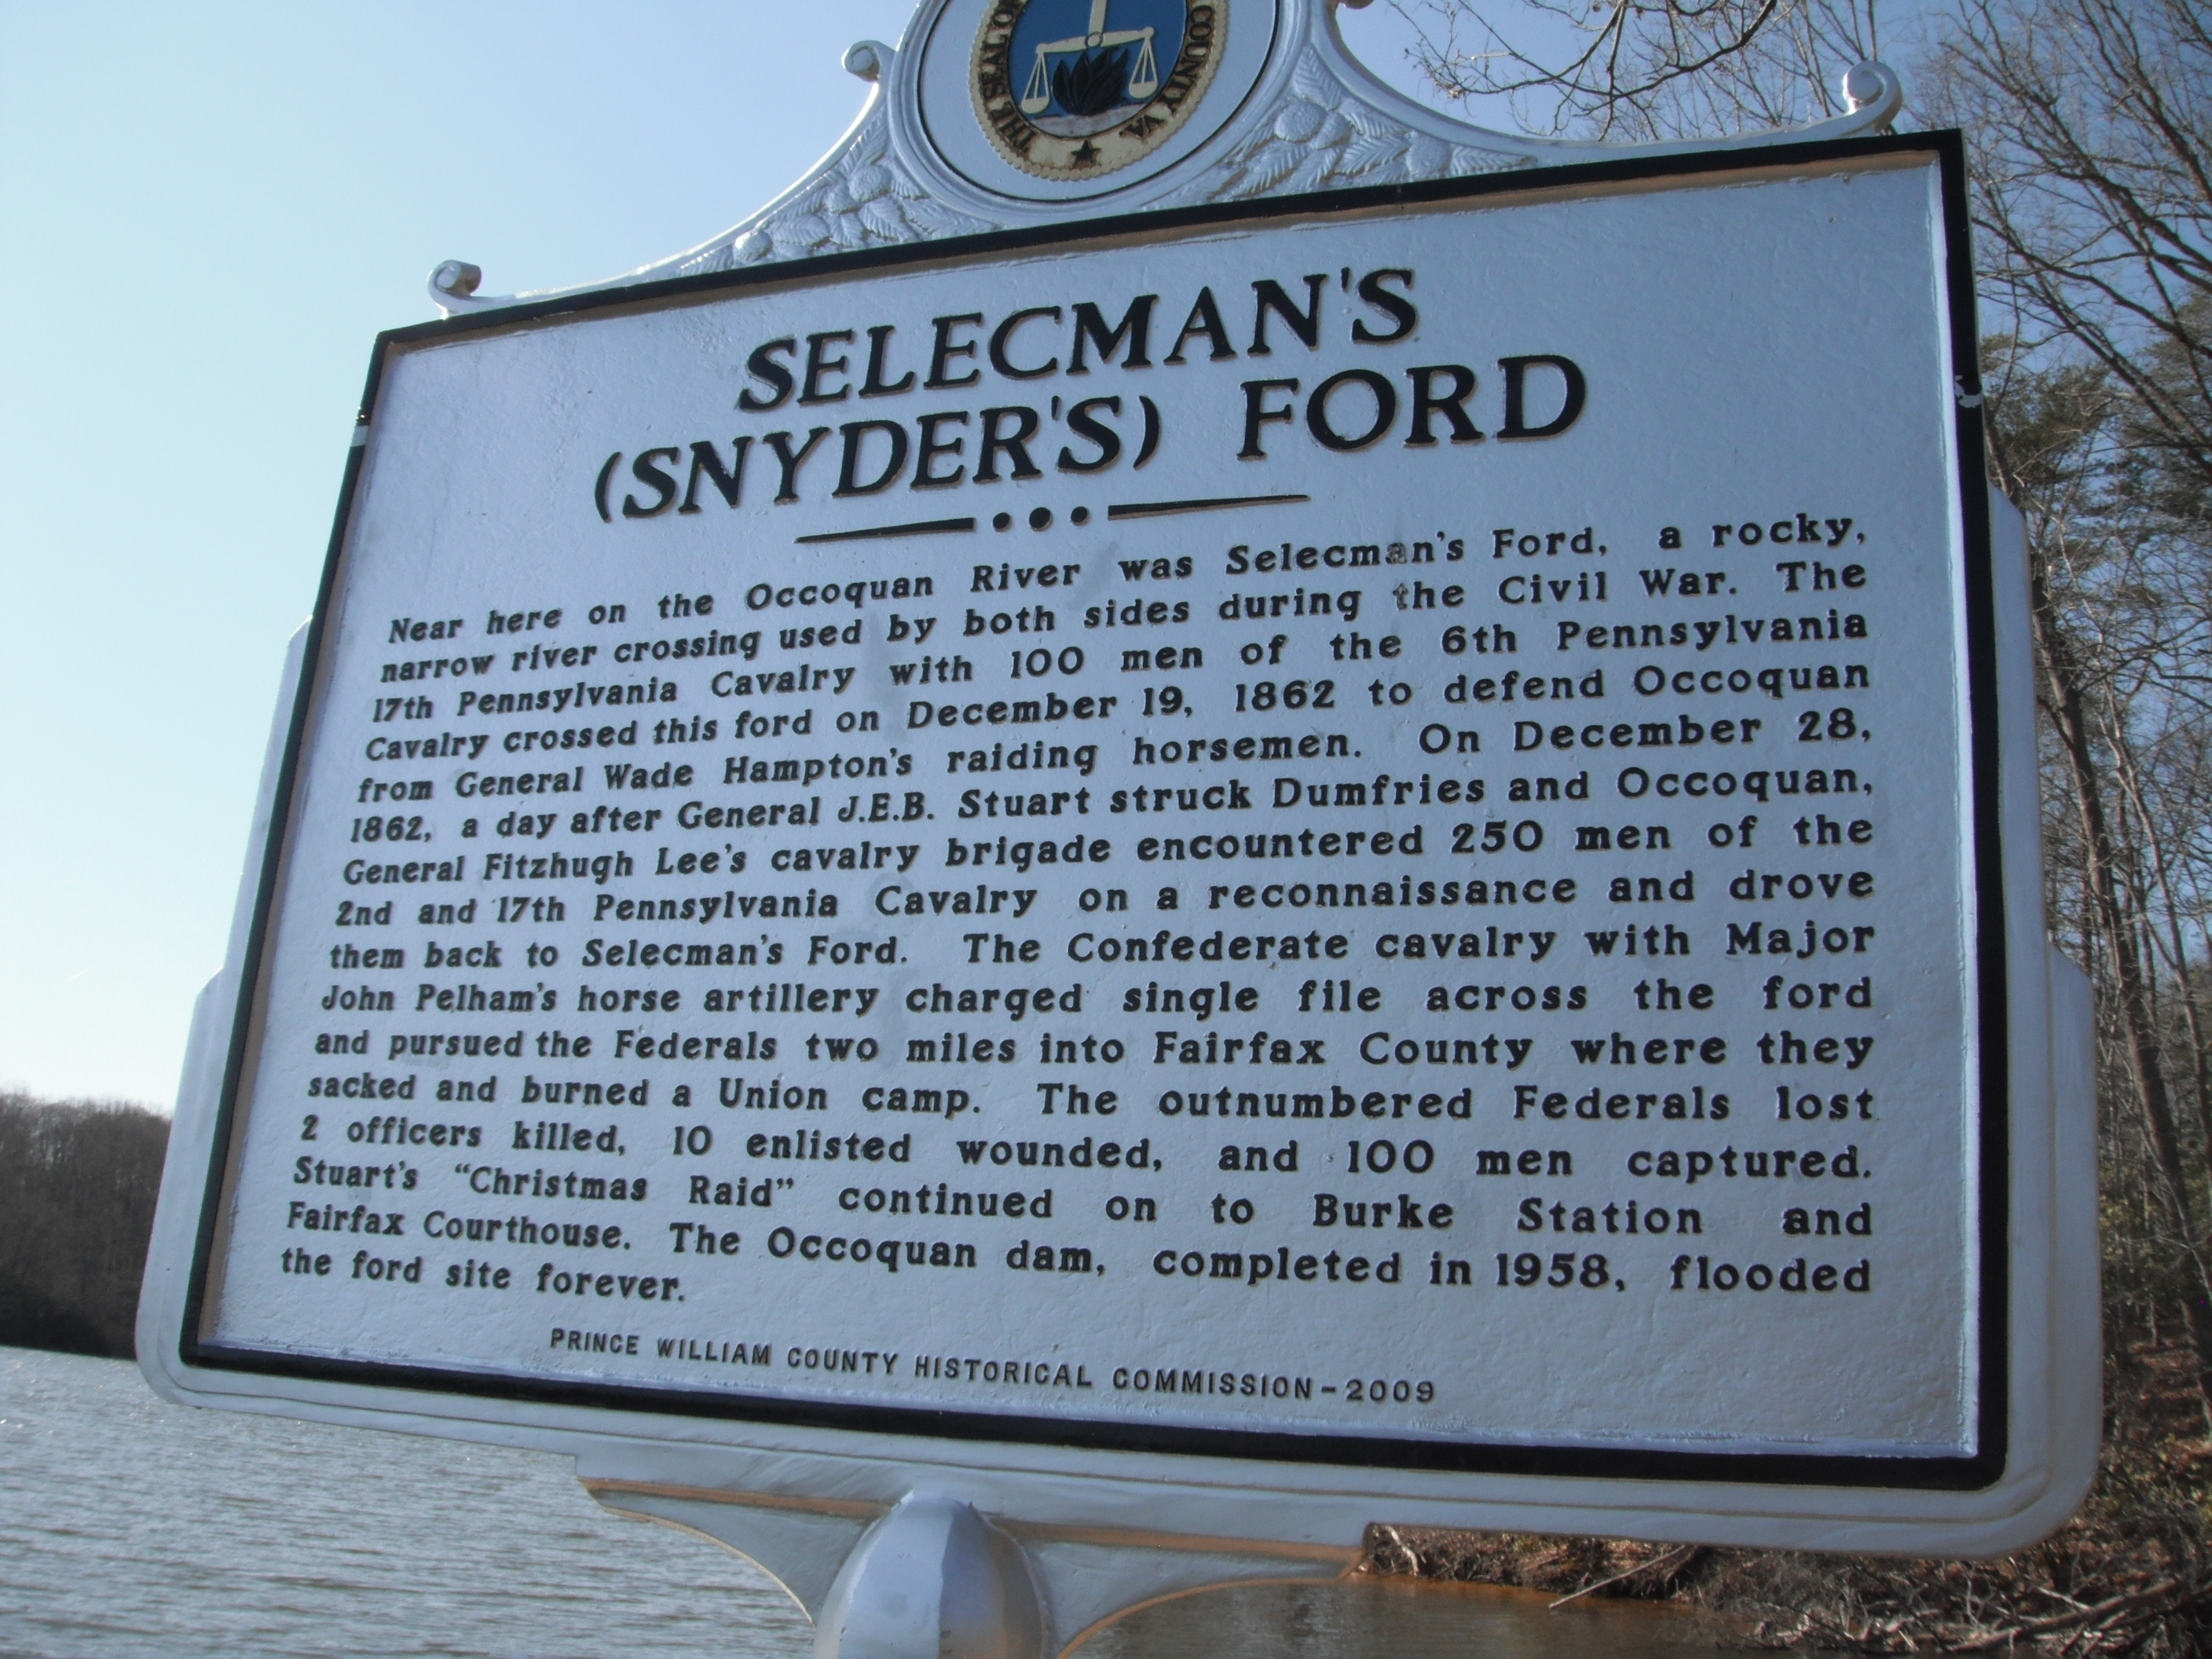 The Fairfax County-side Selecman's Ford marker (the marker on the Prince William County side is the same)